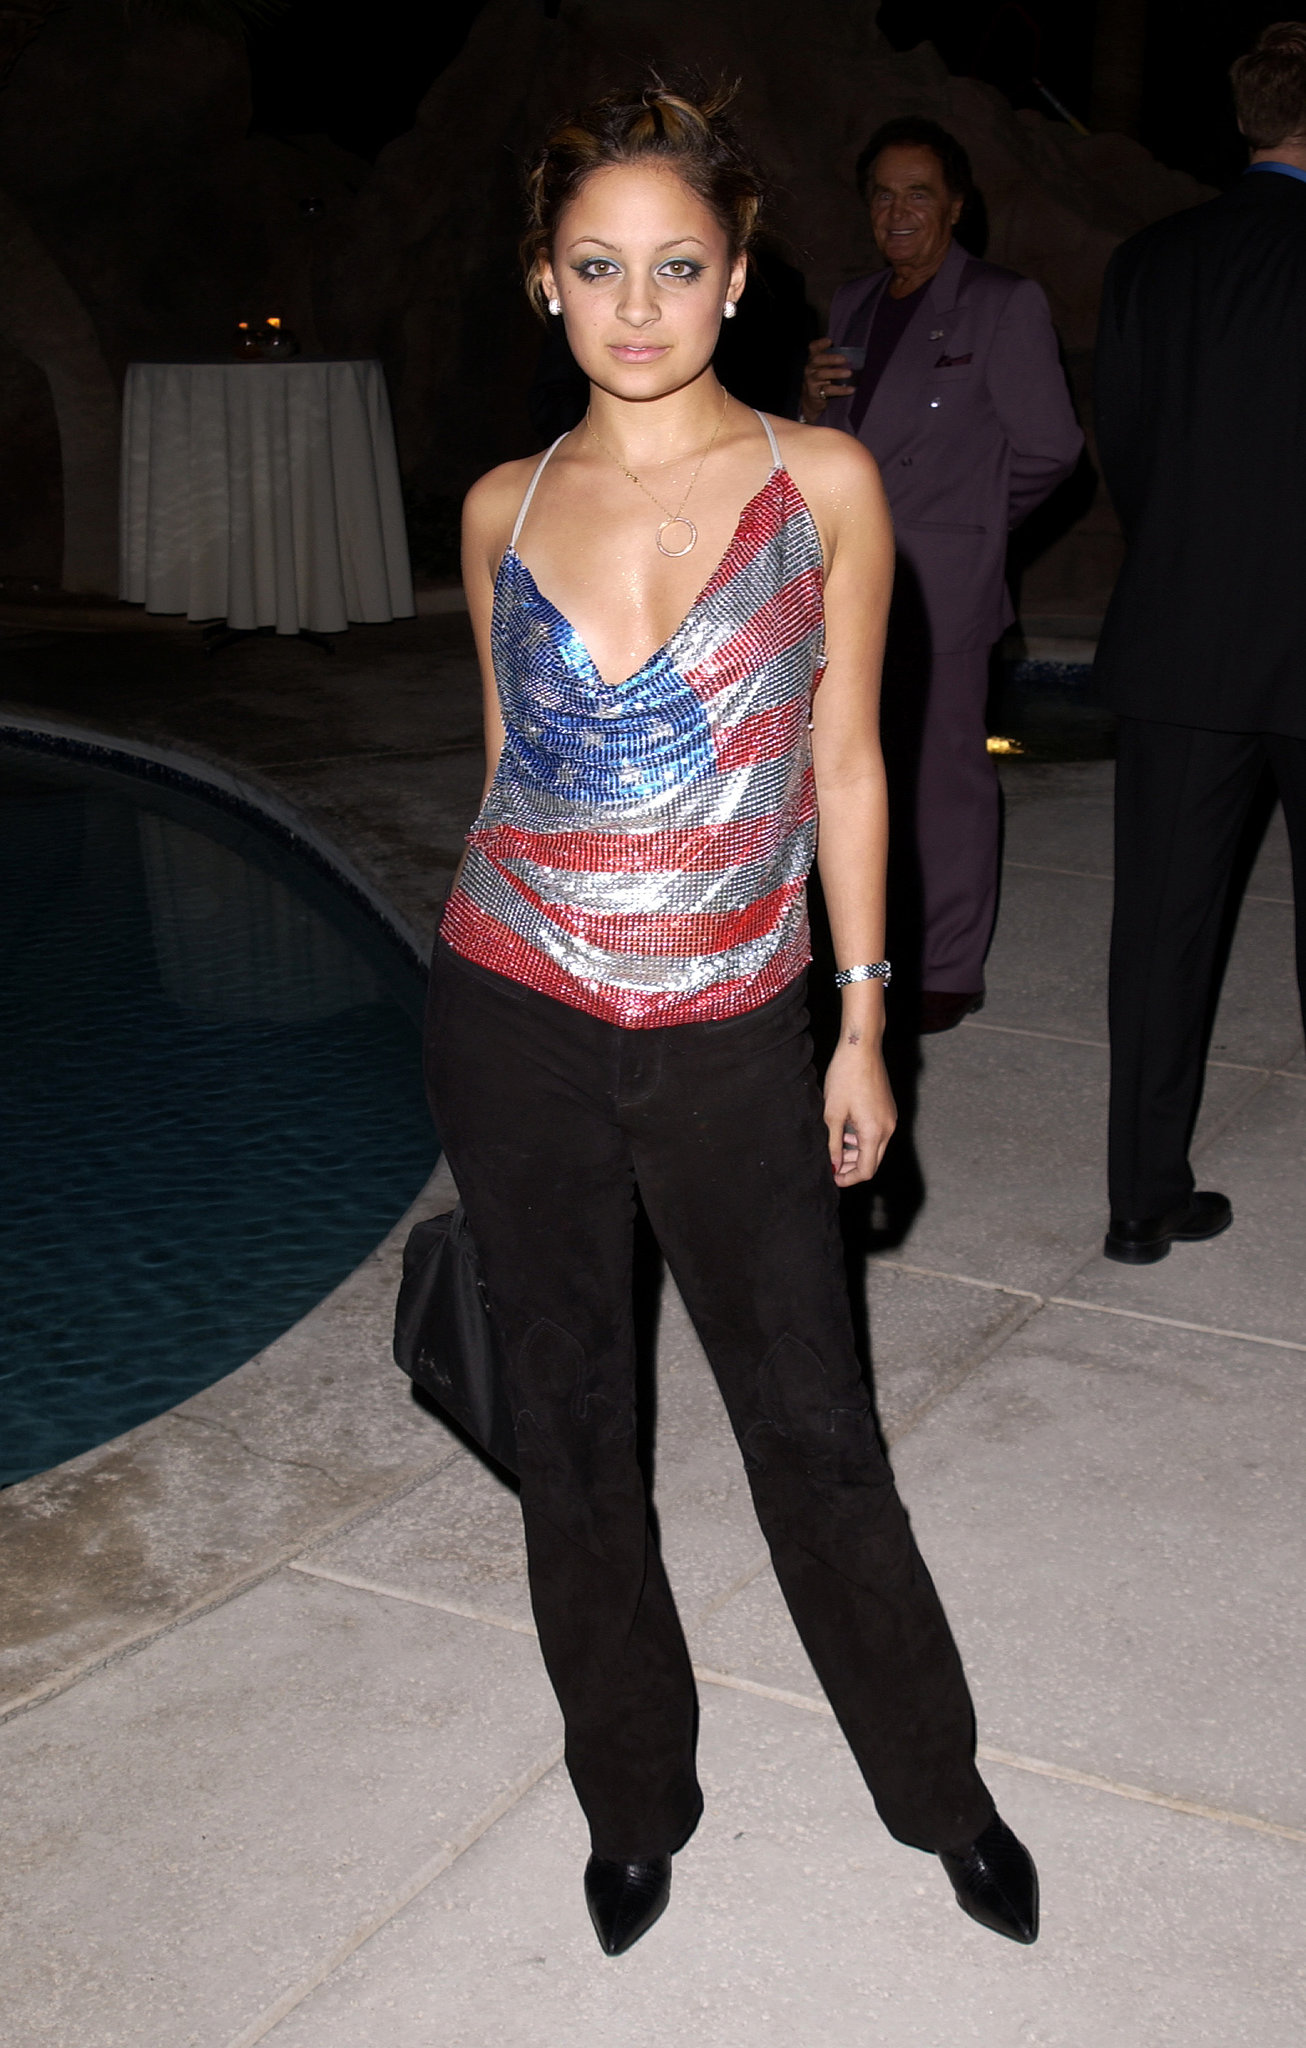 Nicole showed off her patriotic side in a slinky American flag print top at a Las Vegas club opening in November 2001.